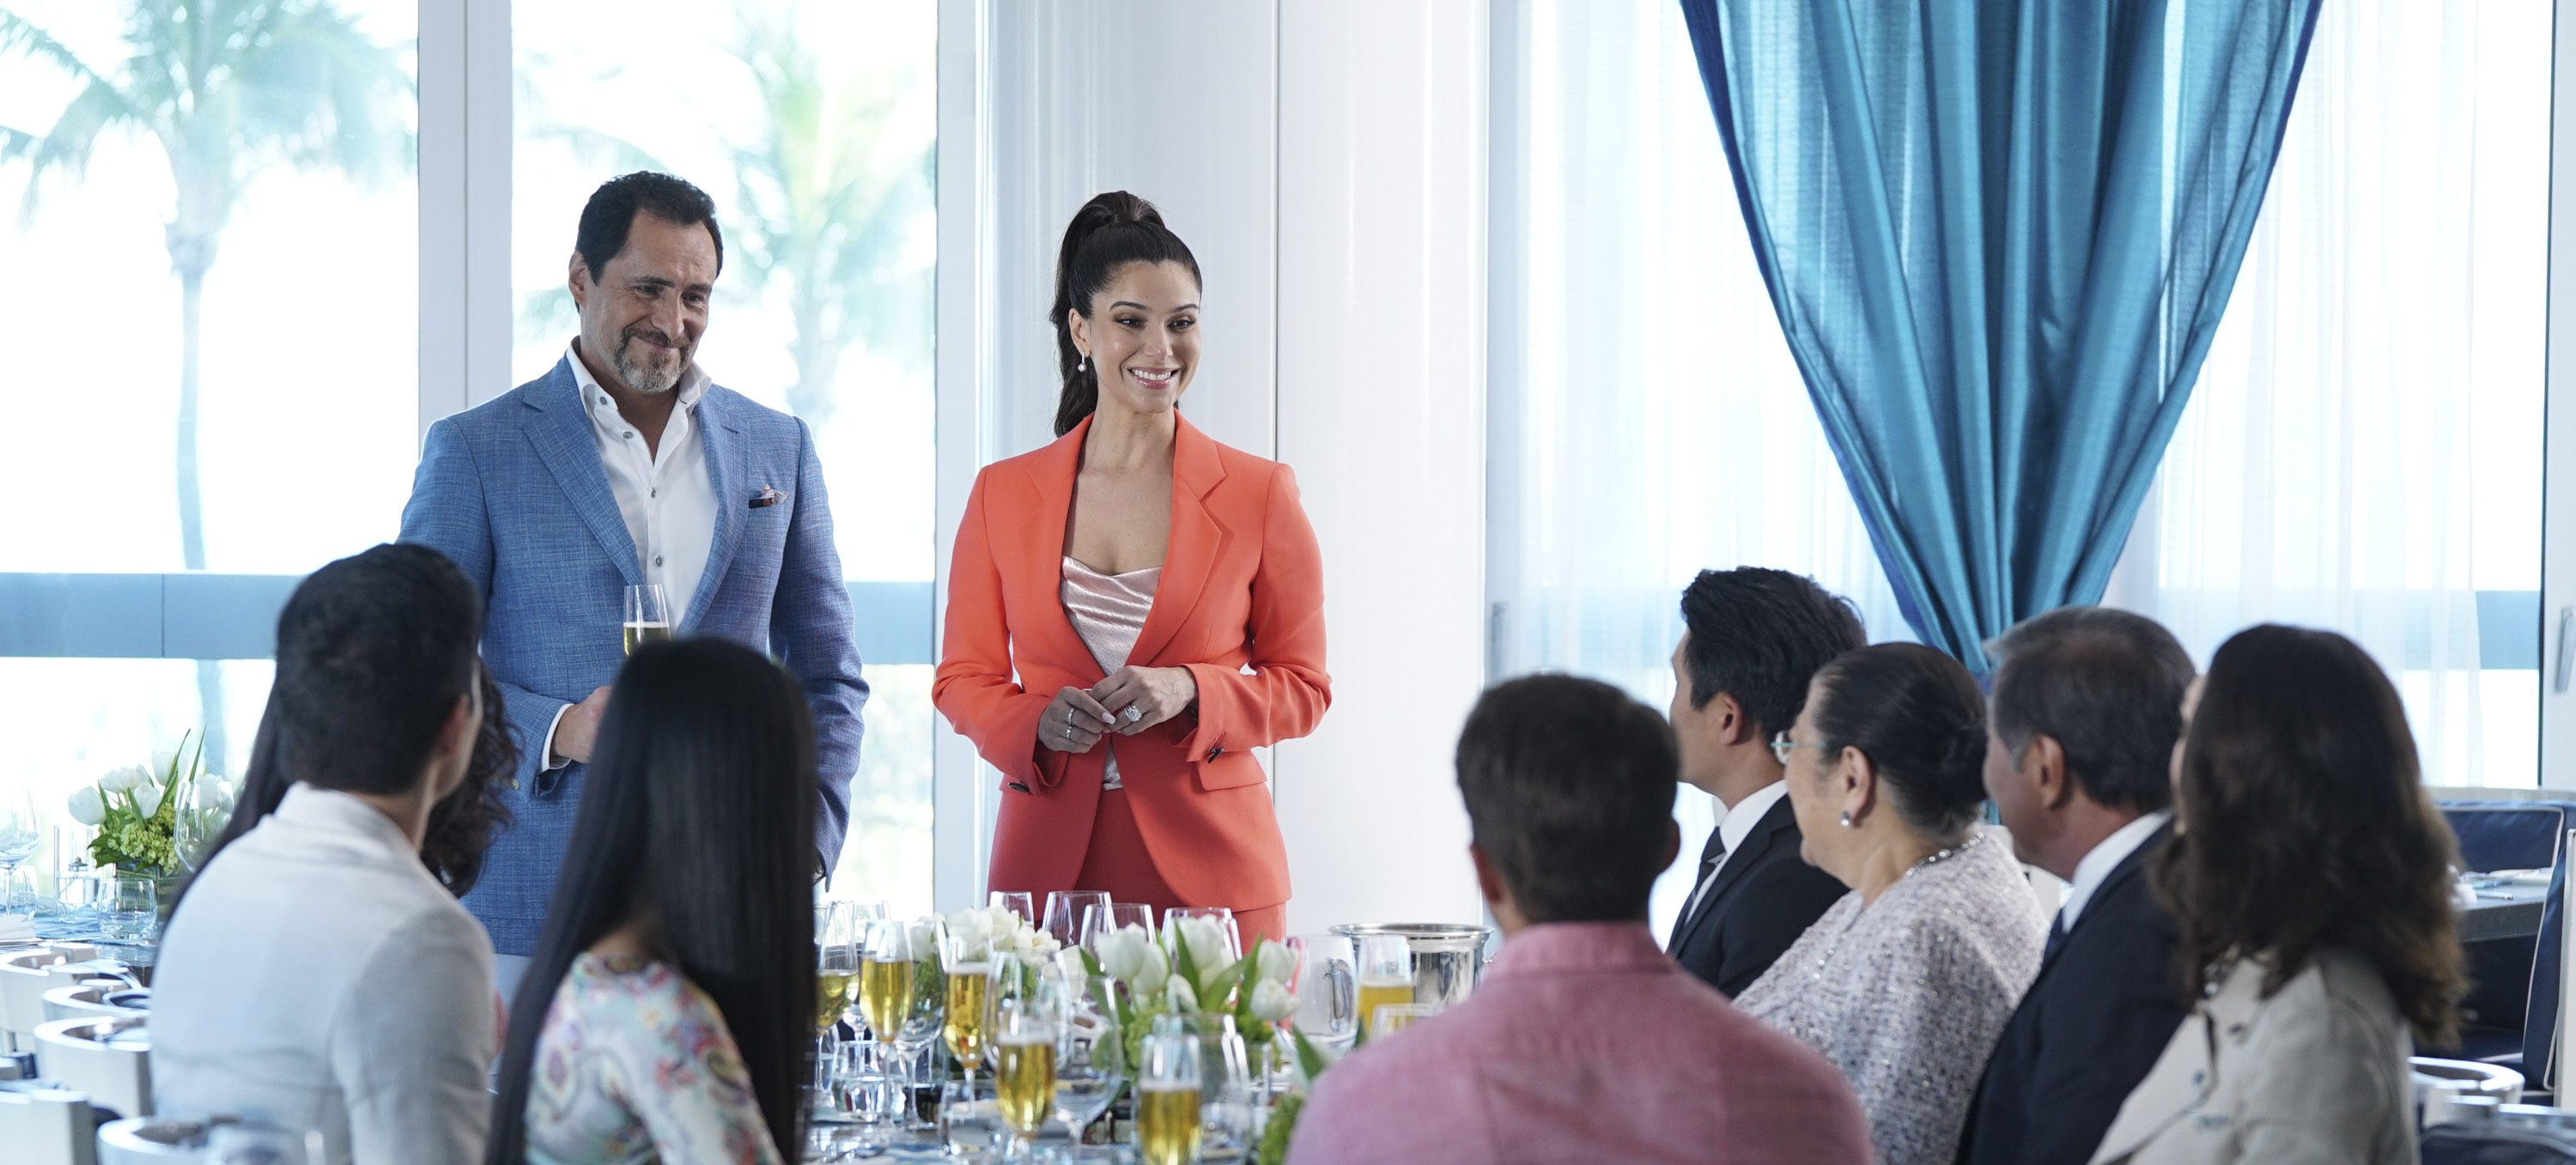 REVIEW: ABC's 'Grand Hotel' Adaptation is Light Summer TV With Plenty of Drama, Backstabbing & Fab Outfits